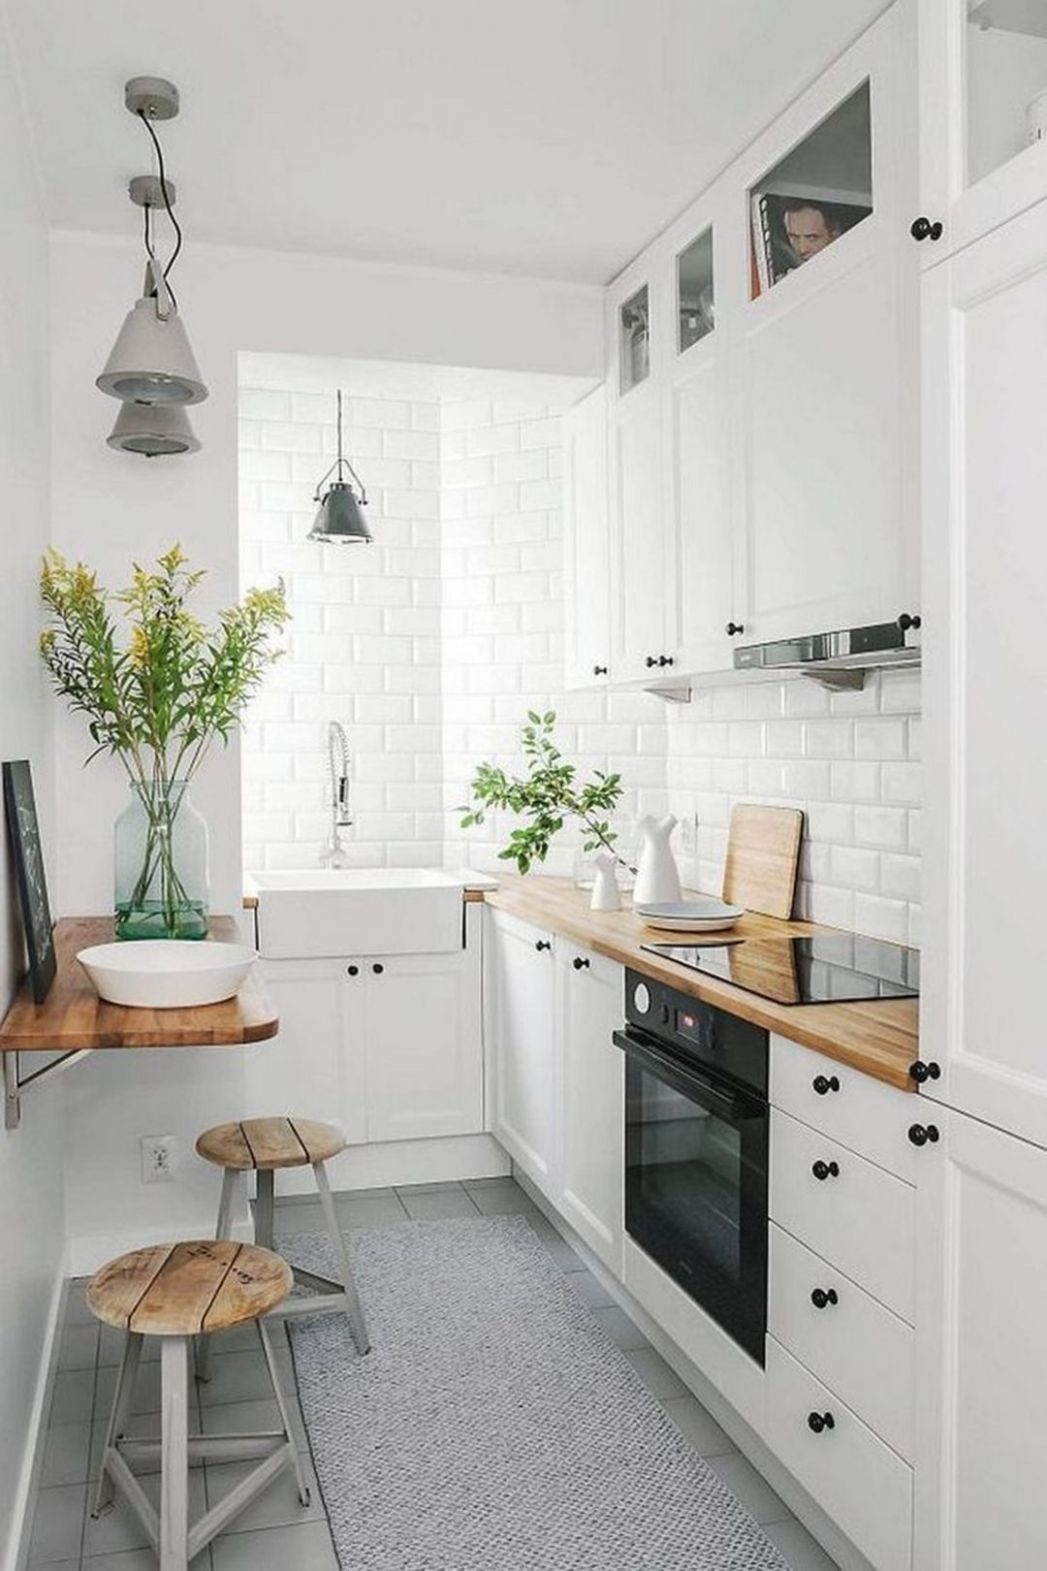 8 Beautiful Tiny Kitchen Decorating Ideas for Your Apartment ..